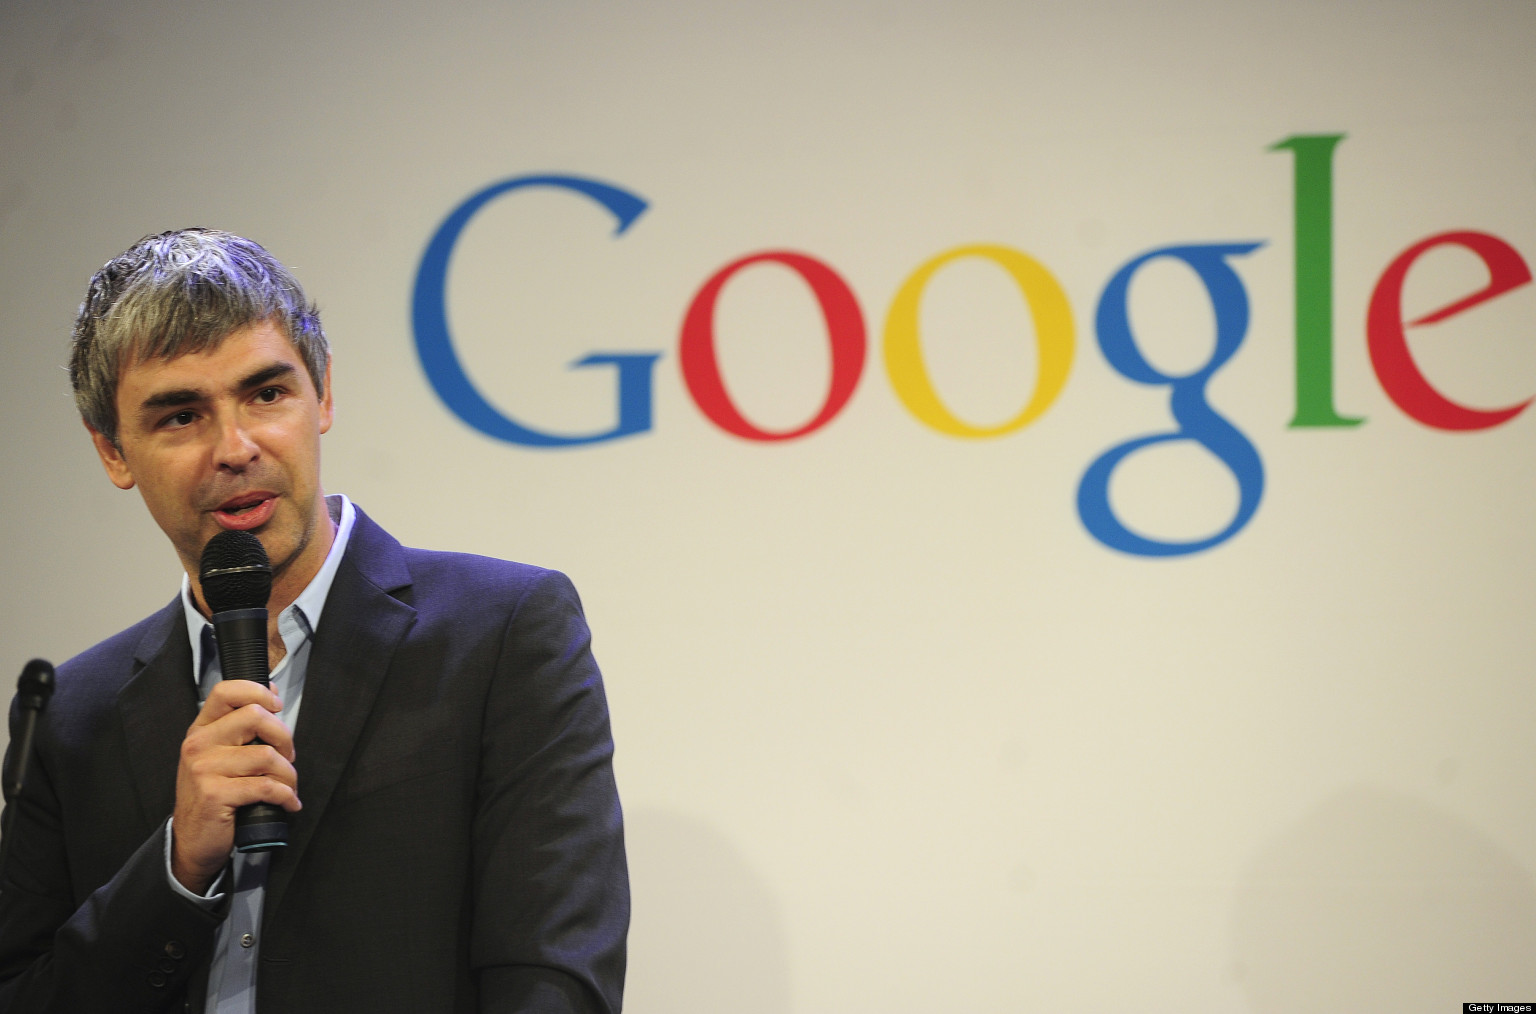 Google CEO Larry Page holds a press annoucement at Google headquarters in New York on May 21, 2012. Google announced that it will allocate 22,000 square feet of its New York headquarters to CornellNYC Tech university, free of charge for five years and six month or until the university completes its campus in New York. AFP PHOTO/Emmanuel Dunand (Photo credit should read EMMANUEL DUNAND/AFP/GettyImages)